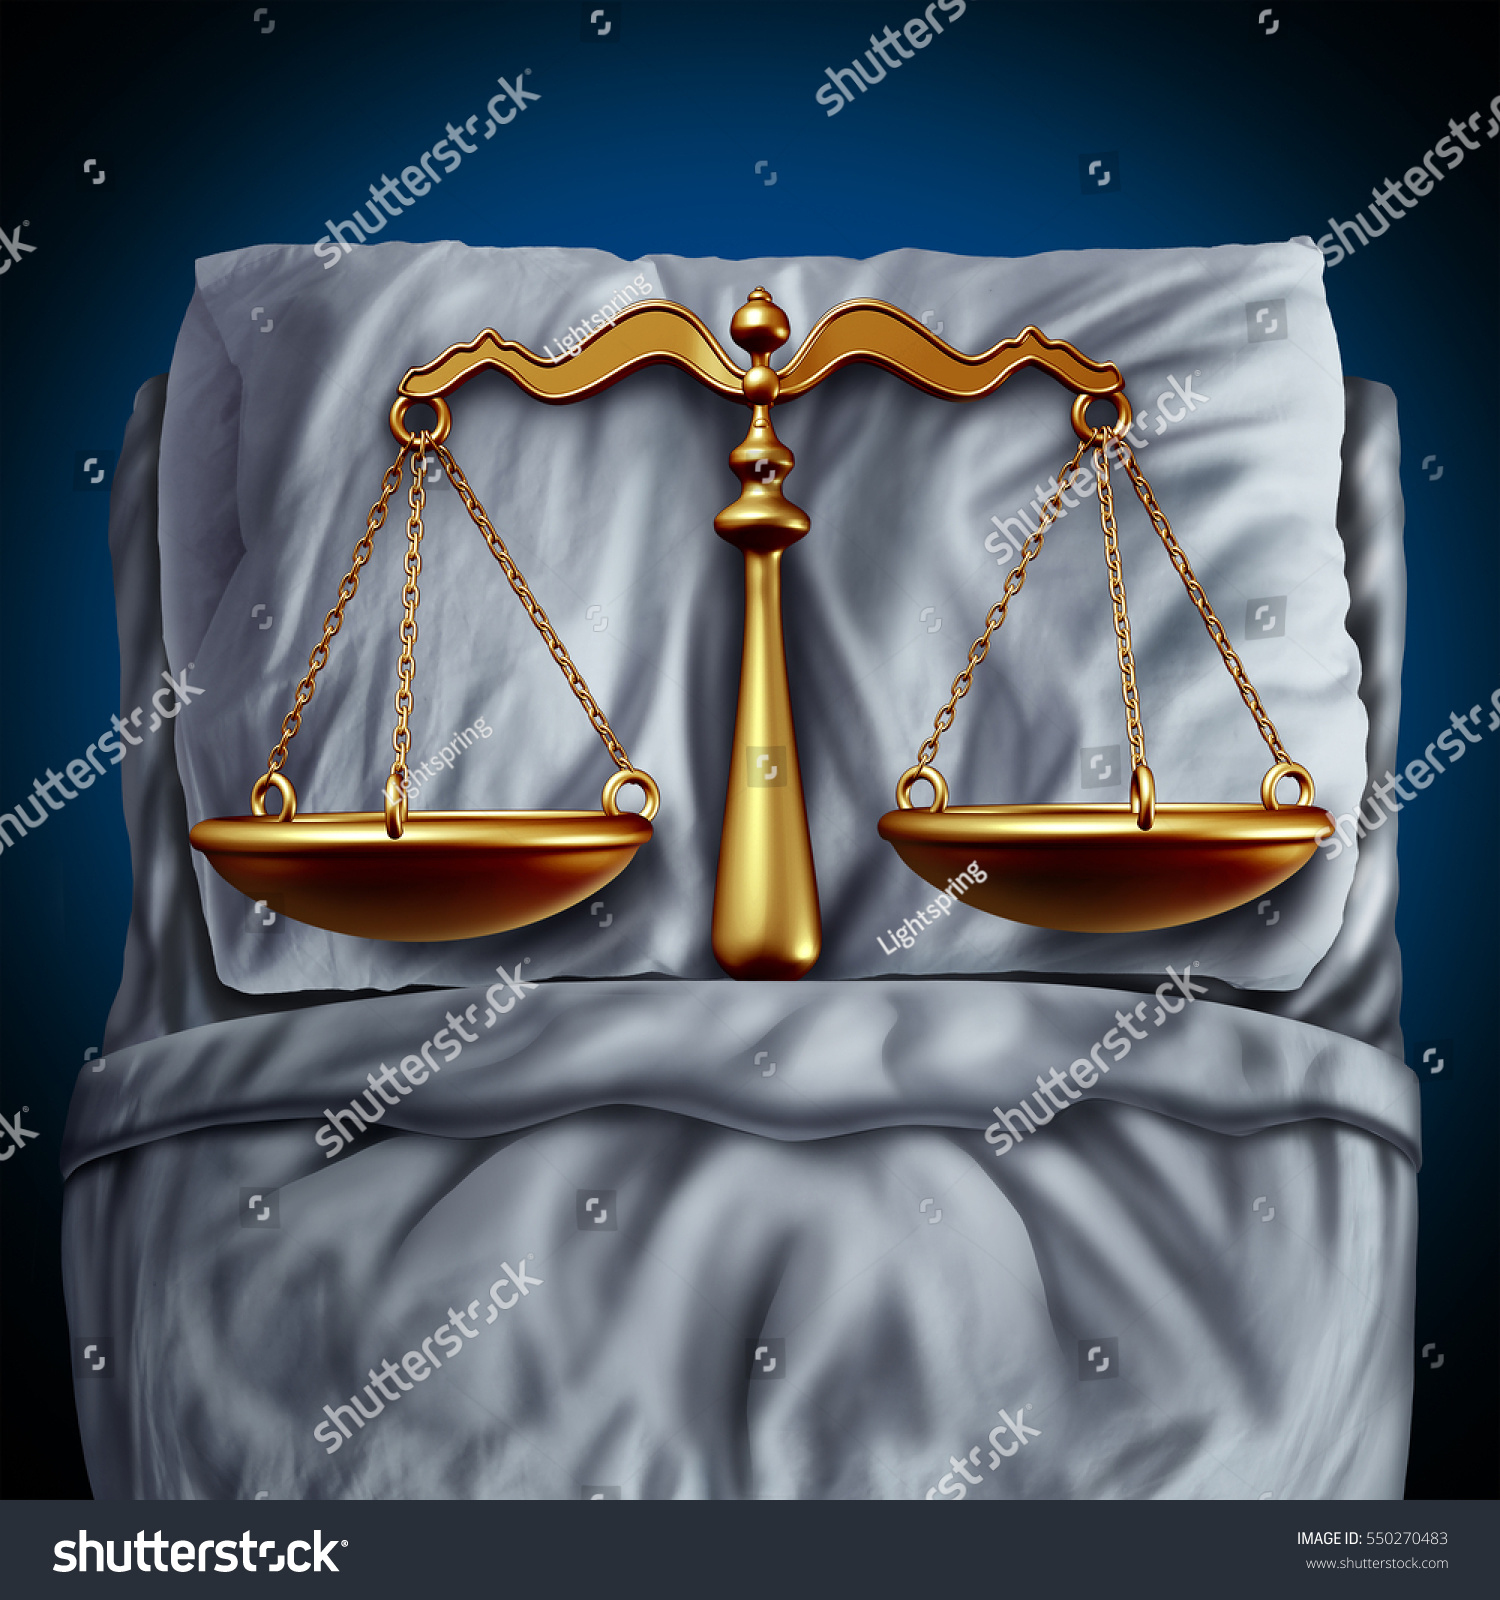 Legal rest peace mind due confidence stock illustration 550270483 legal rest and peace of mind due to confidence in the law as a justice scale biocorpaavc